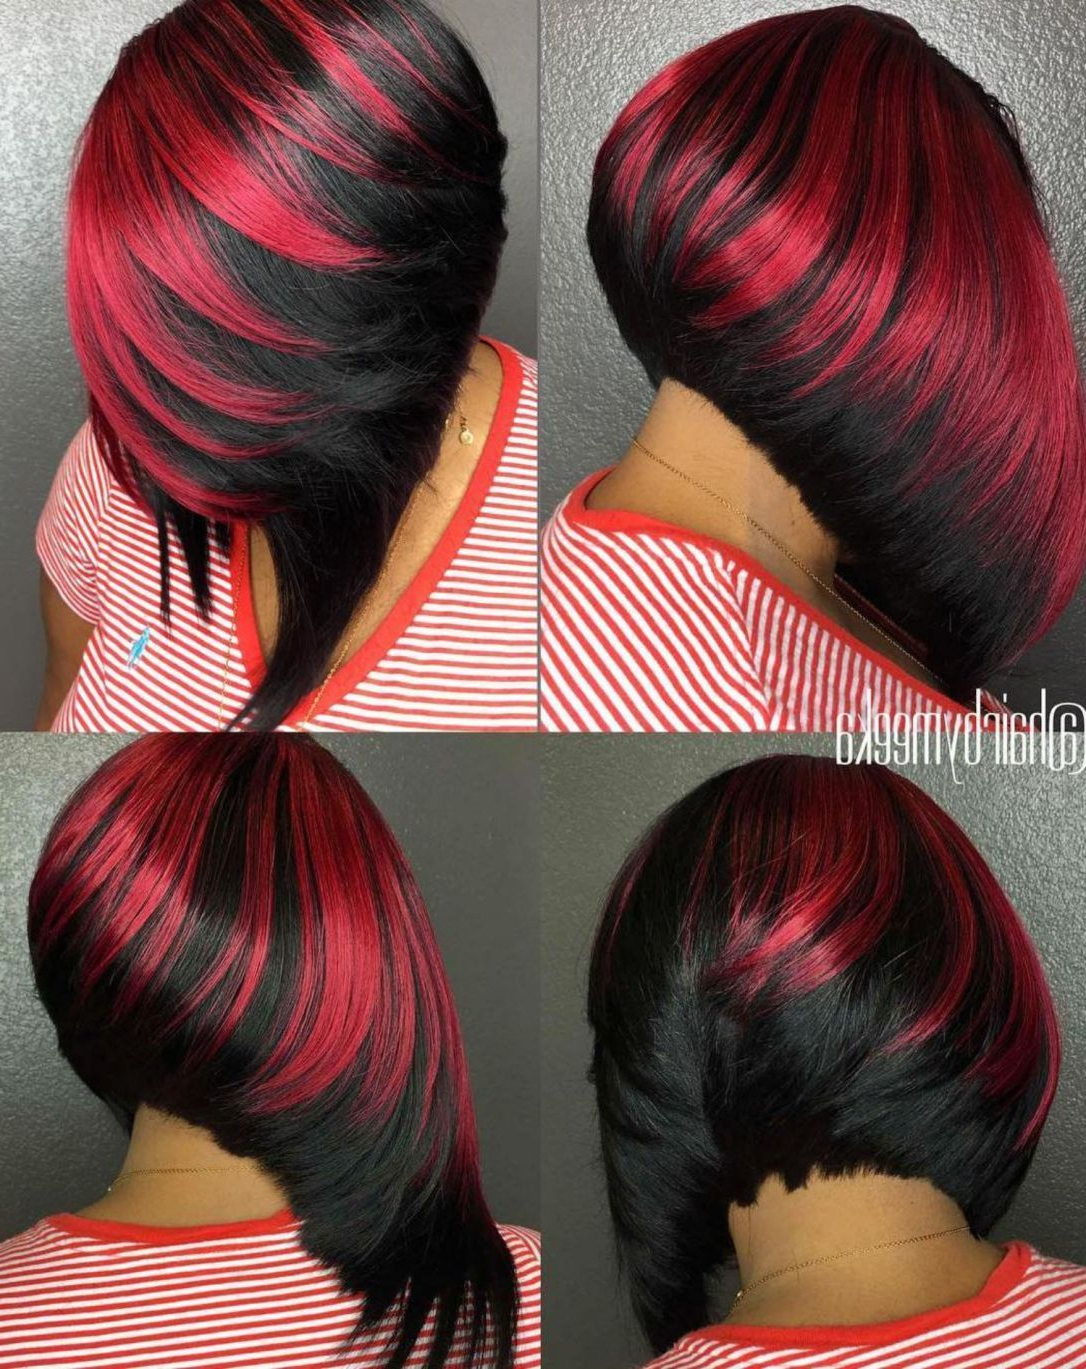 Hair Styles, Hair Regarding 2019 Radiant Red Bob Haircuts (View 9 of 20)